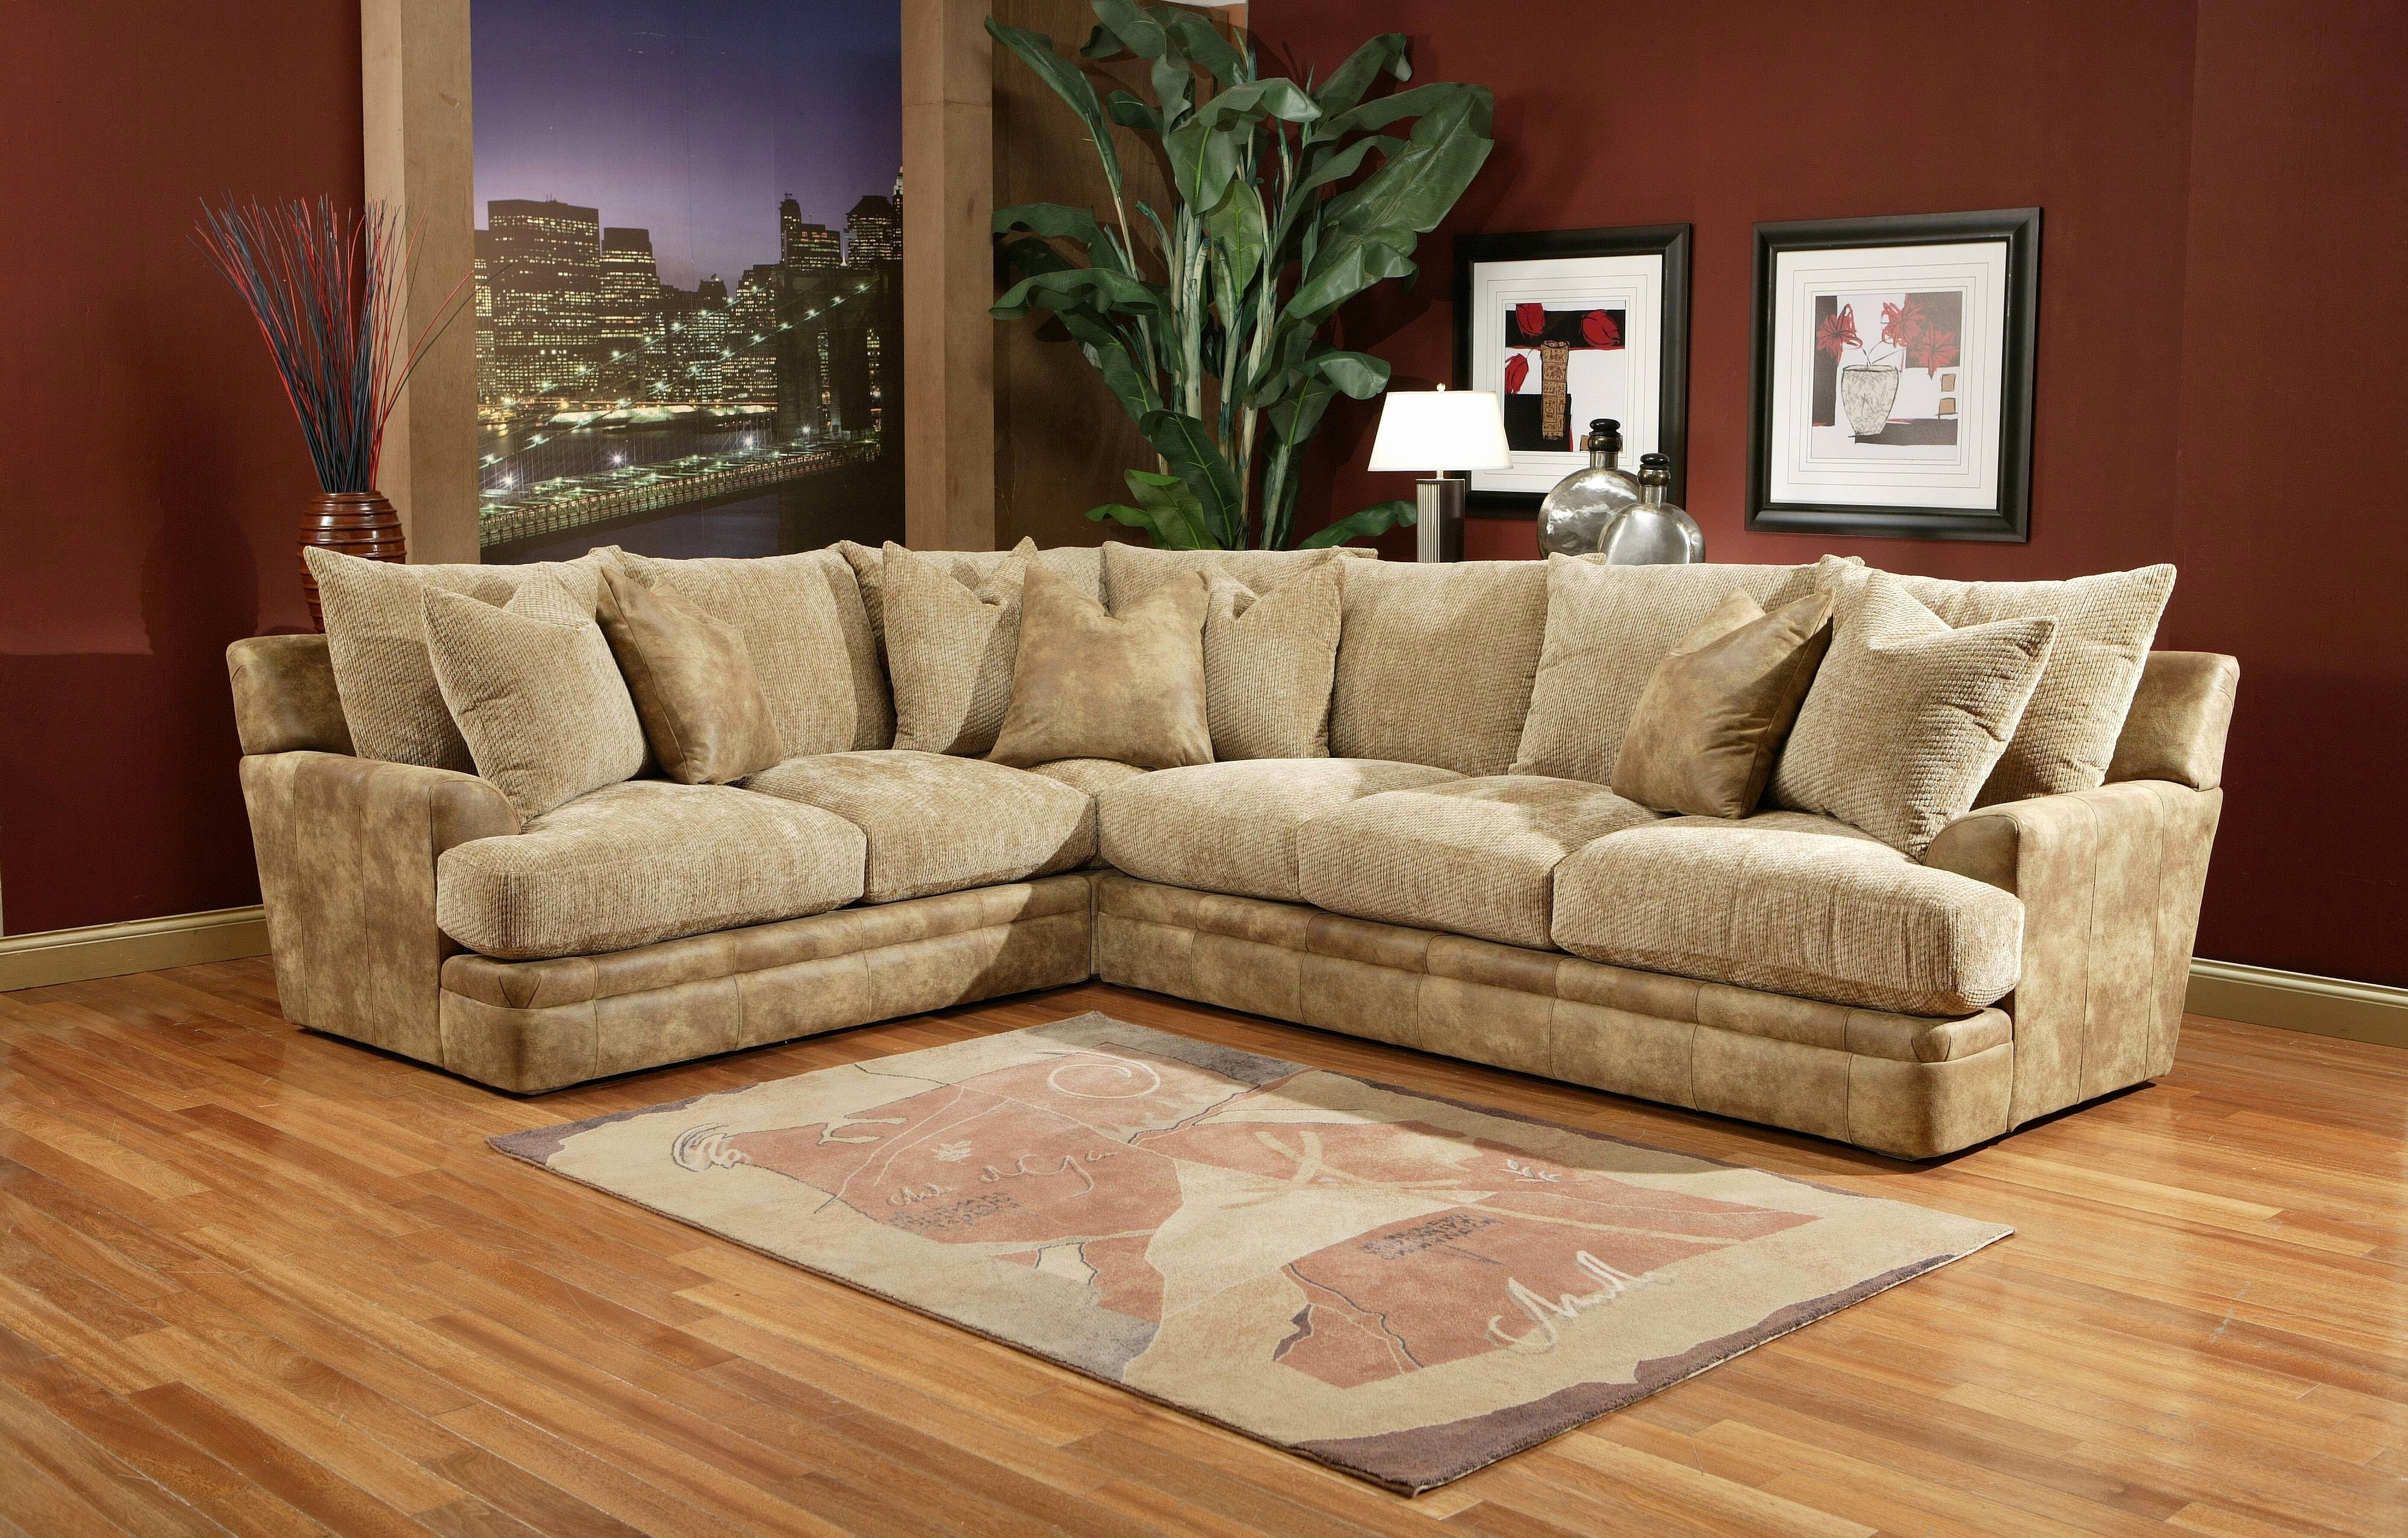 Find Sectional Sofas Super 2018 Popular Down Filled Sectional Sofa In Down Sectional Sofas (Image 3 of 10)